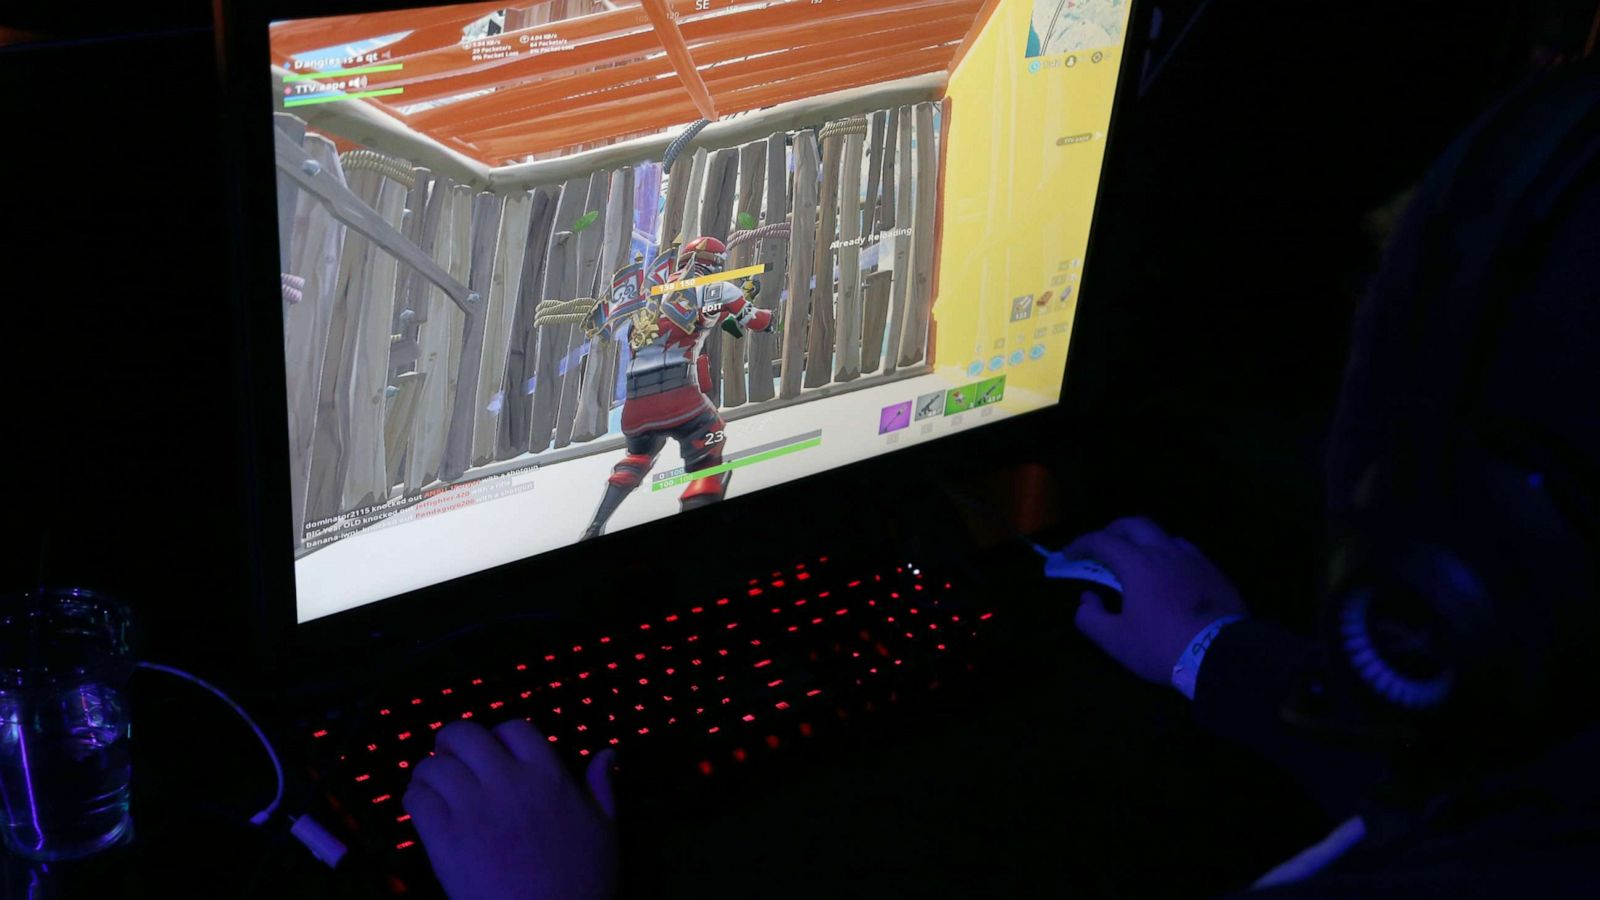 How much is too much? Test could show the effect of gaming